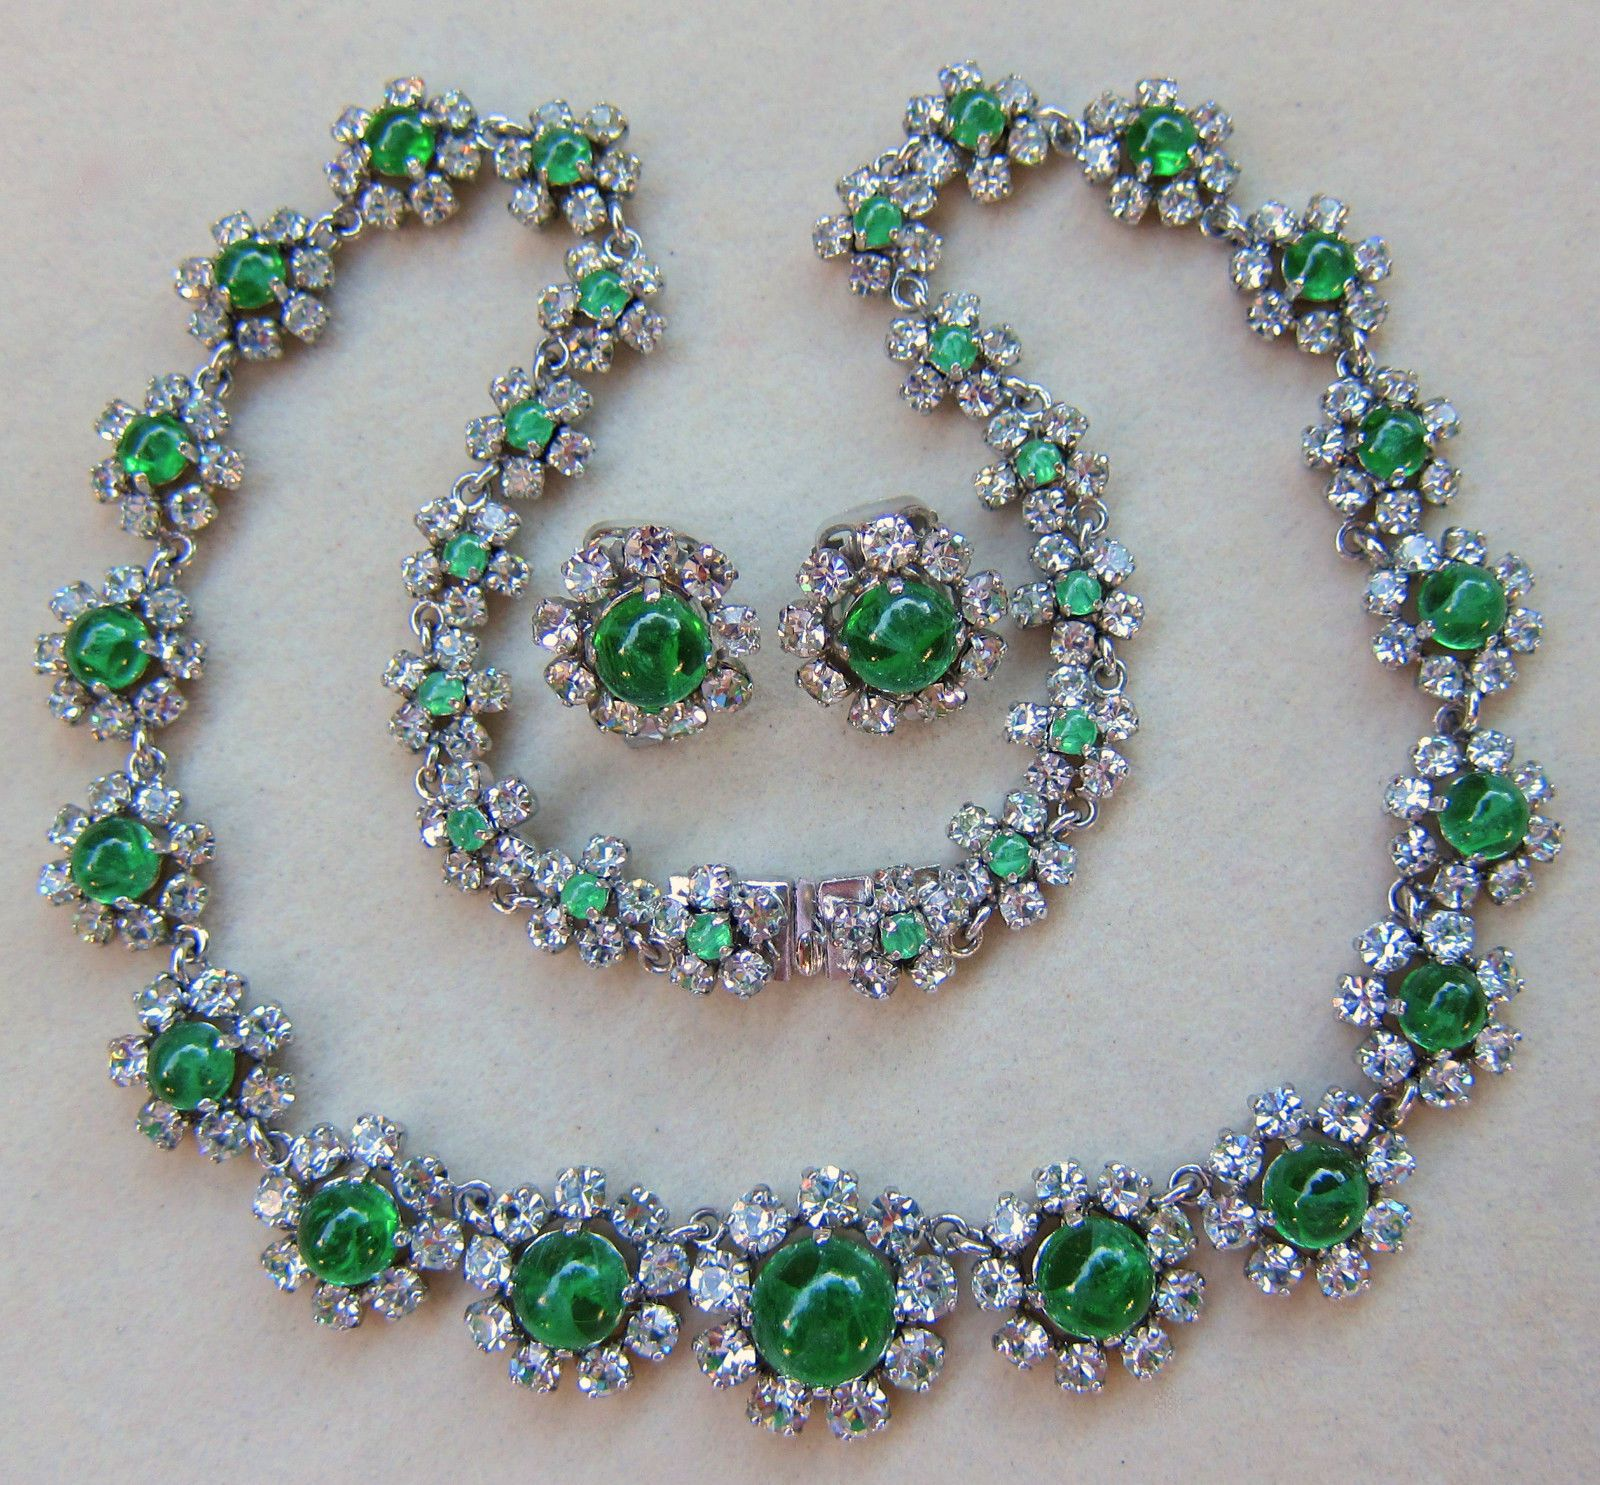 Christian dior germany 1973 flawed emerald cabochon necklace